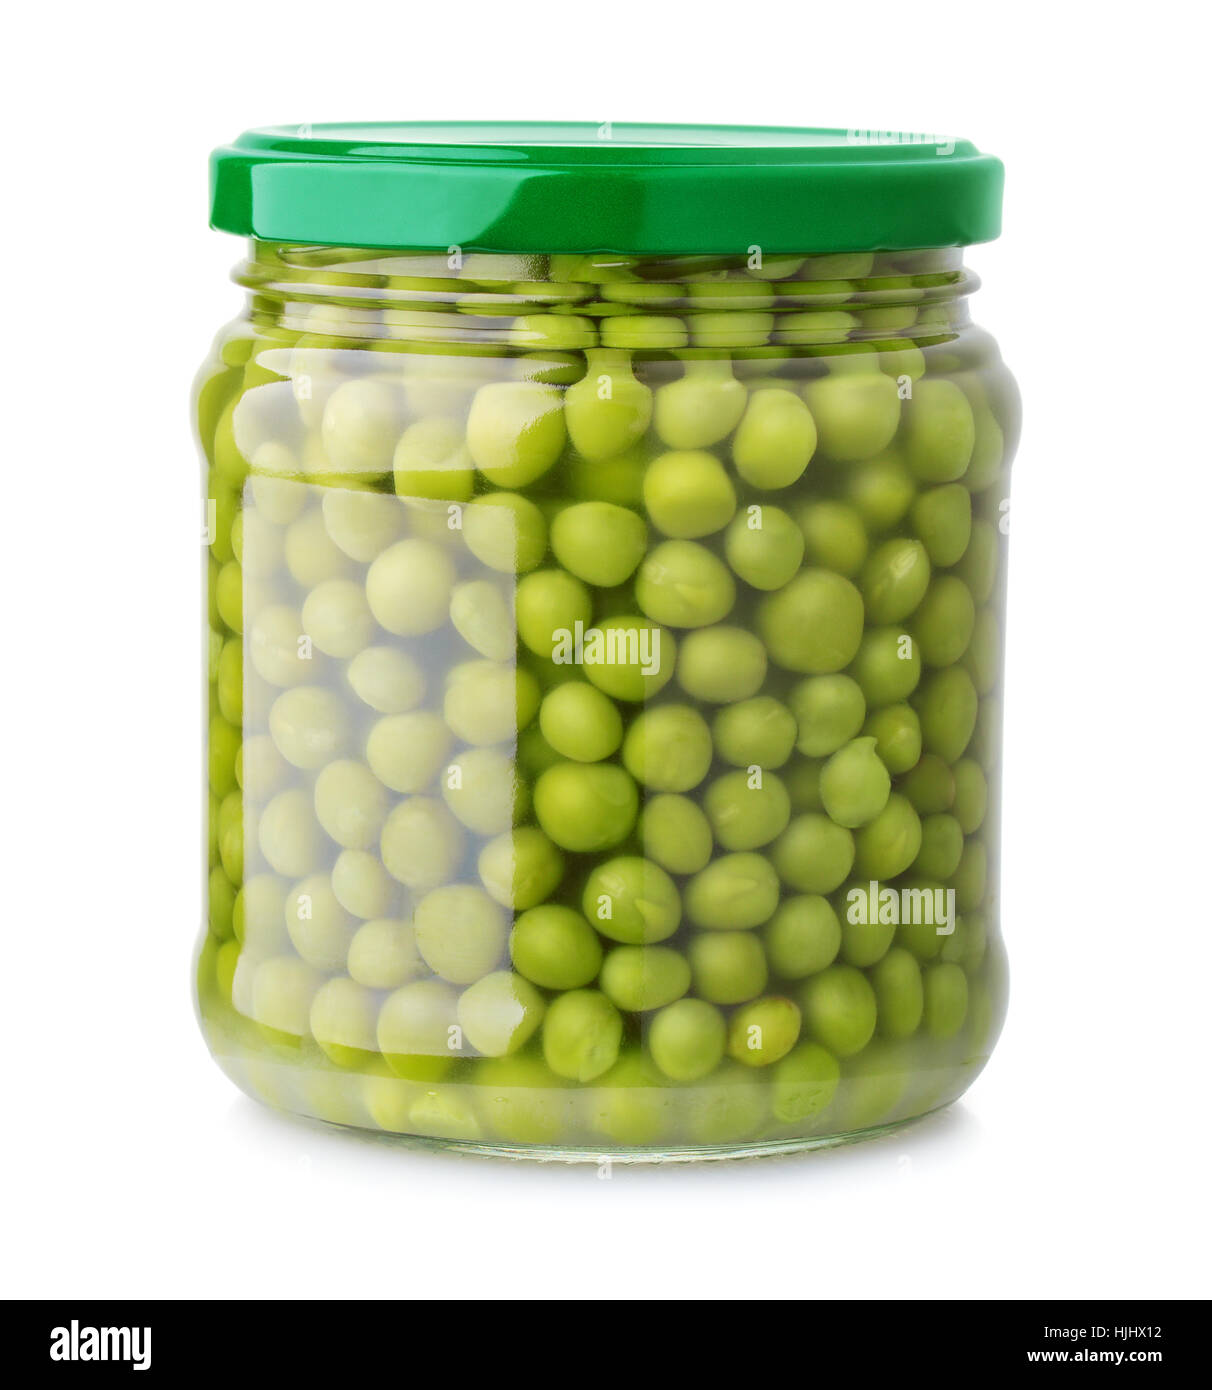 Glass jar of green peas isolated on white Stock Photo